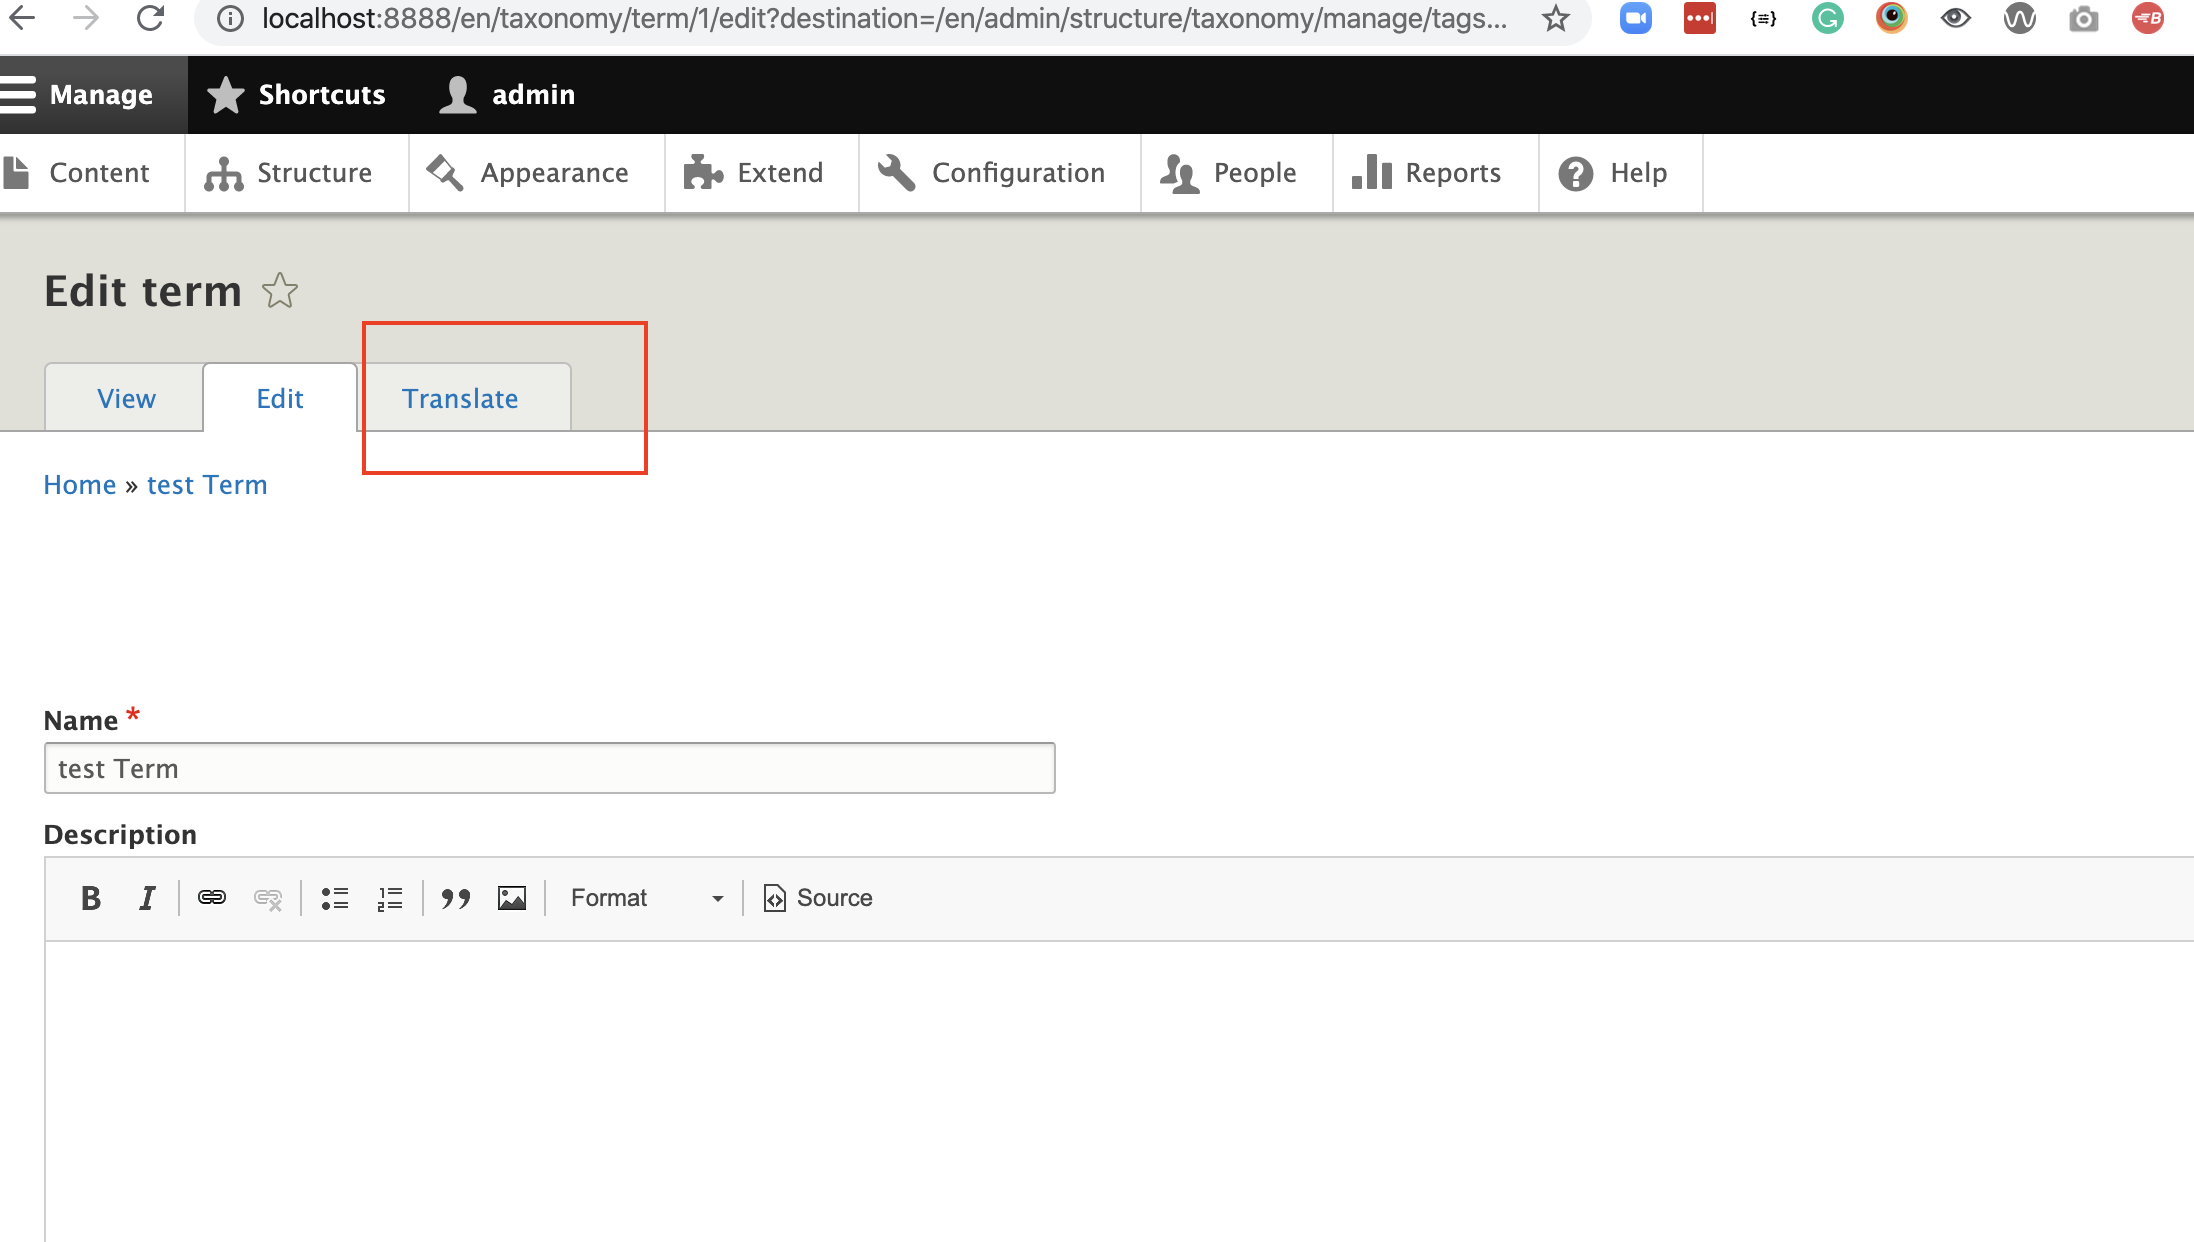 screenshot of backend to edit term